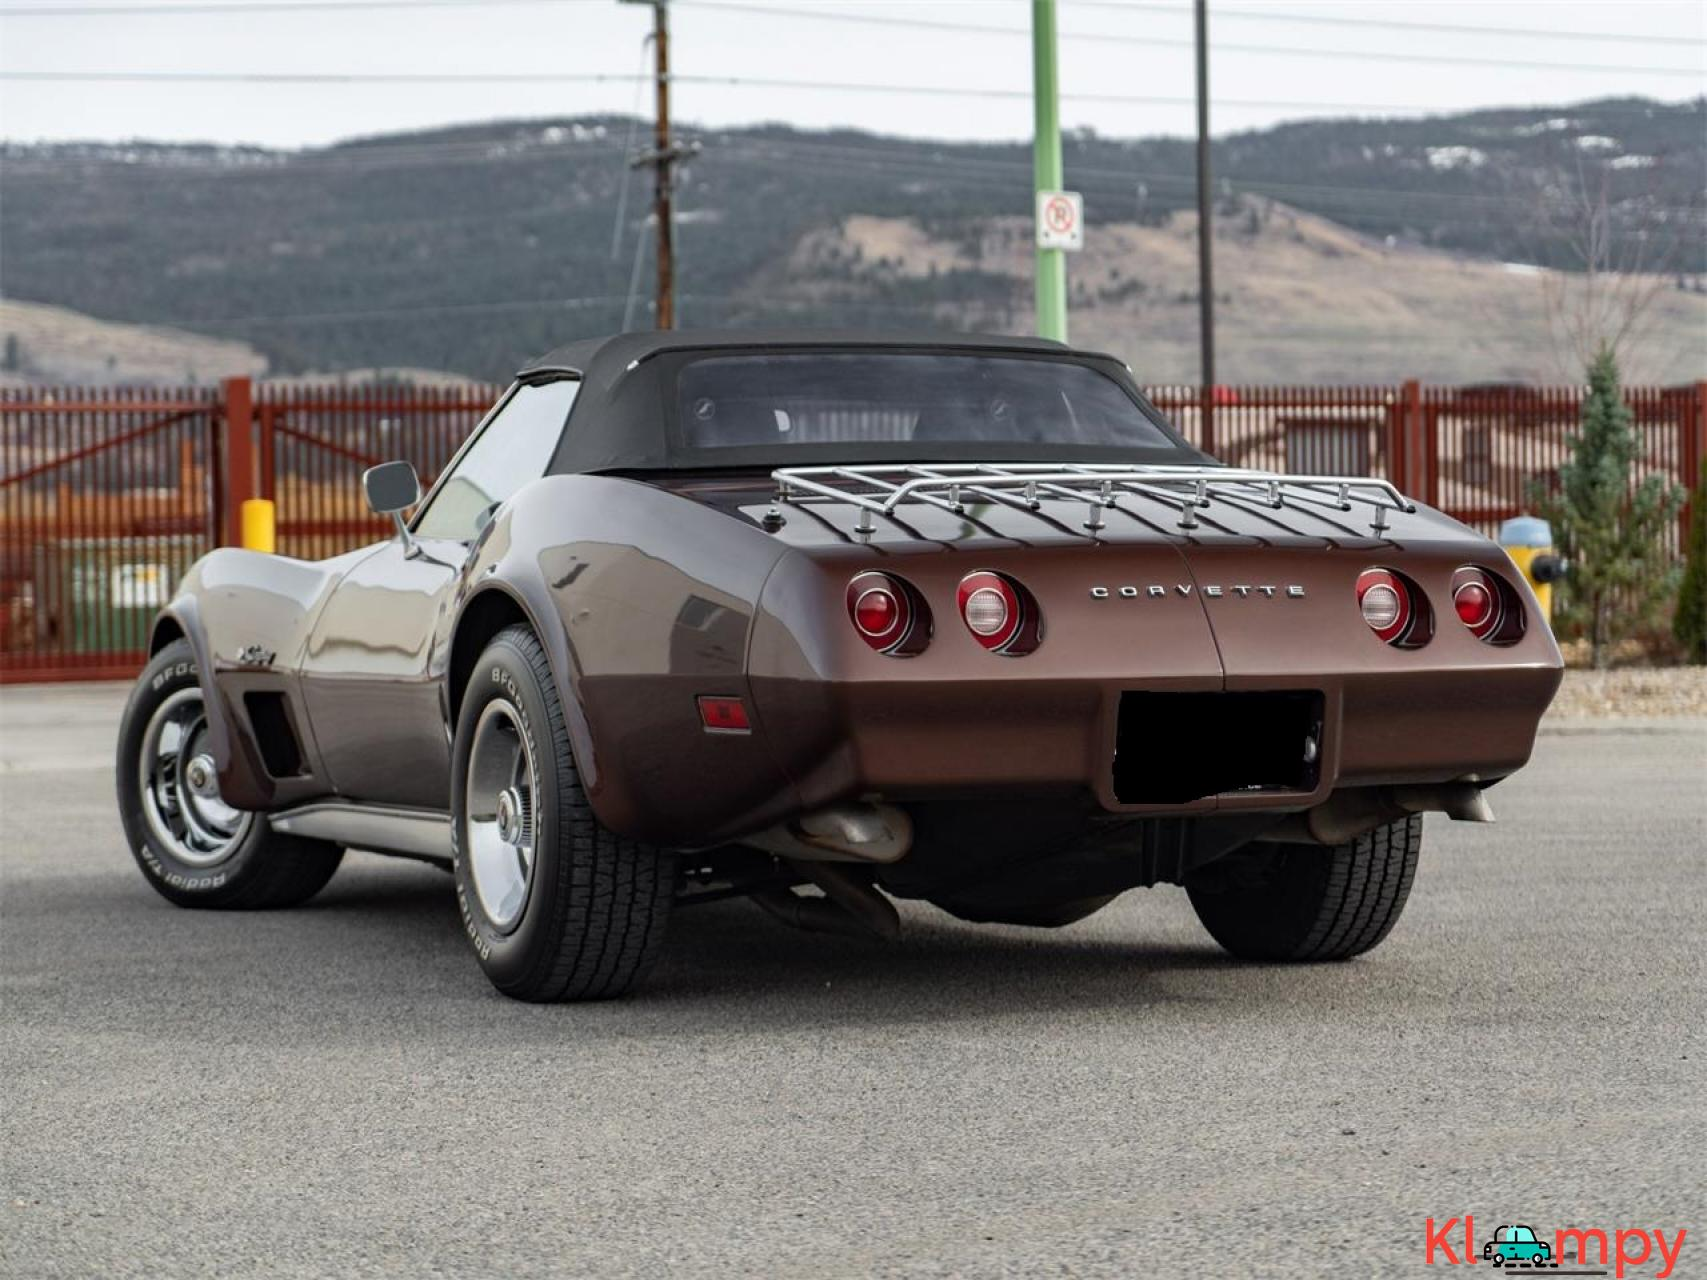 1974 Chevrolet Corvette Pheonix 350ci Crate Engine - 2/20